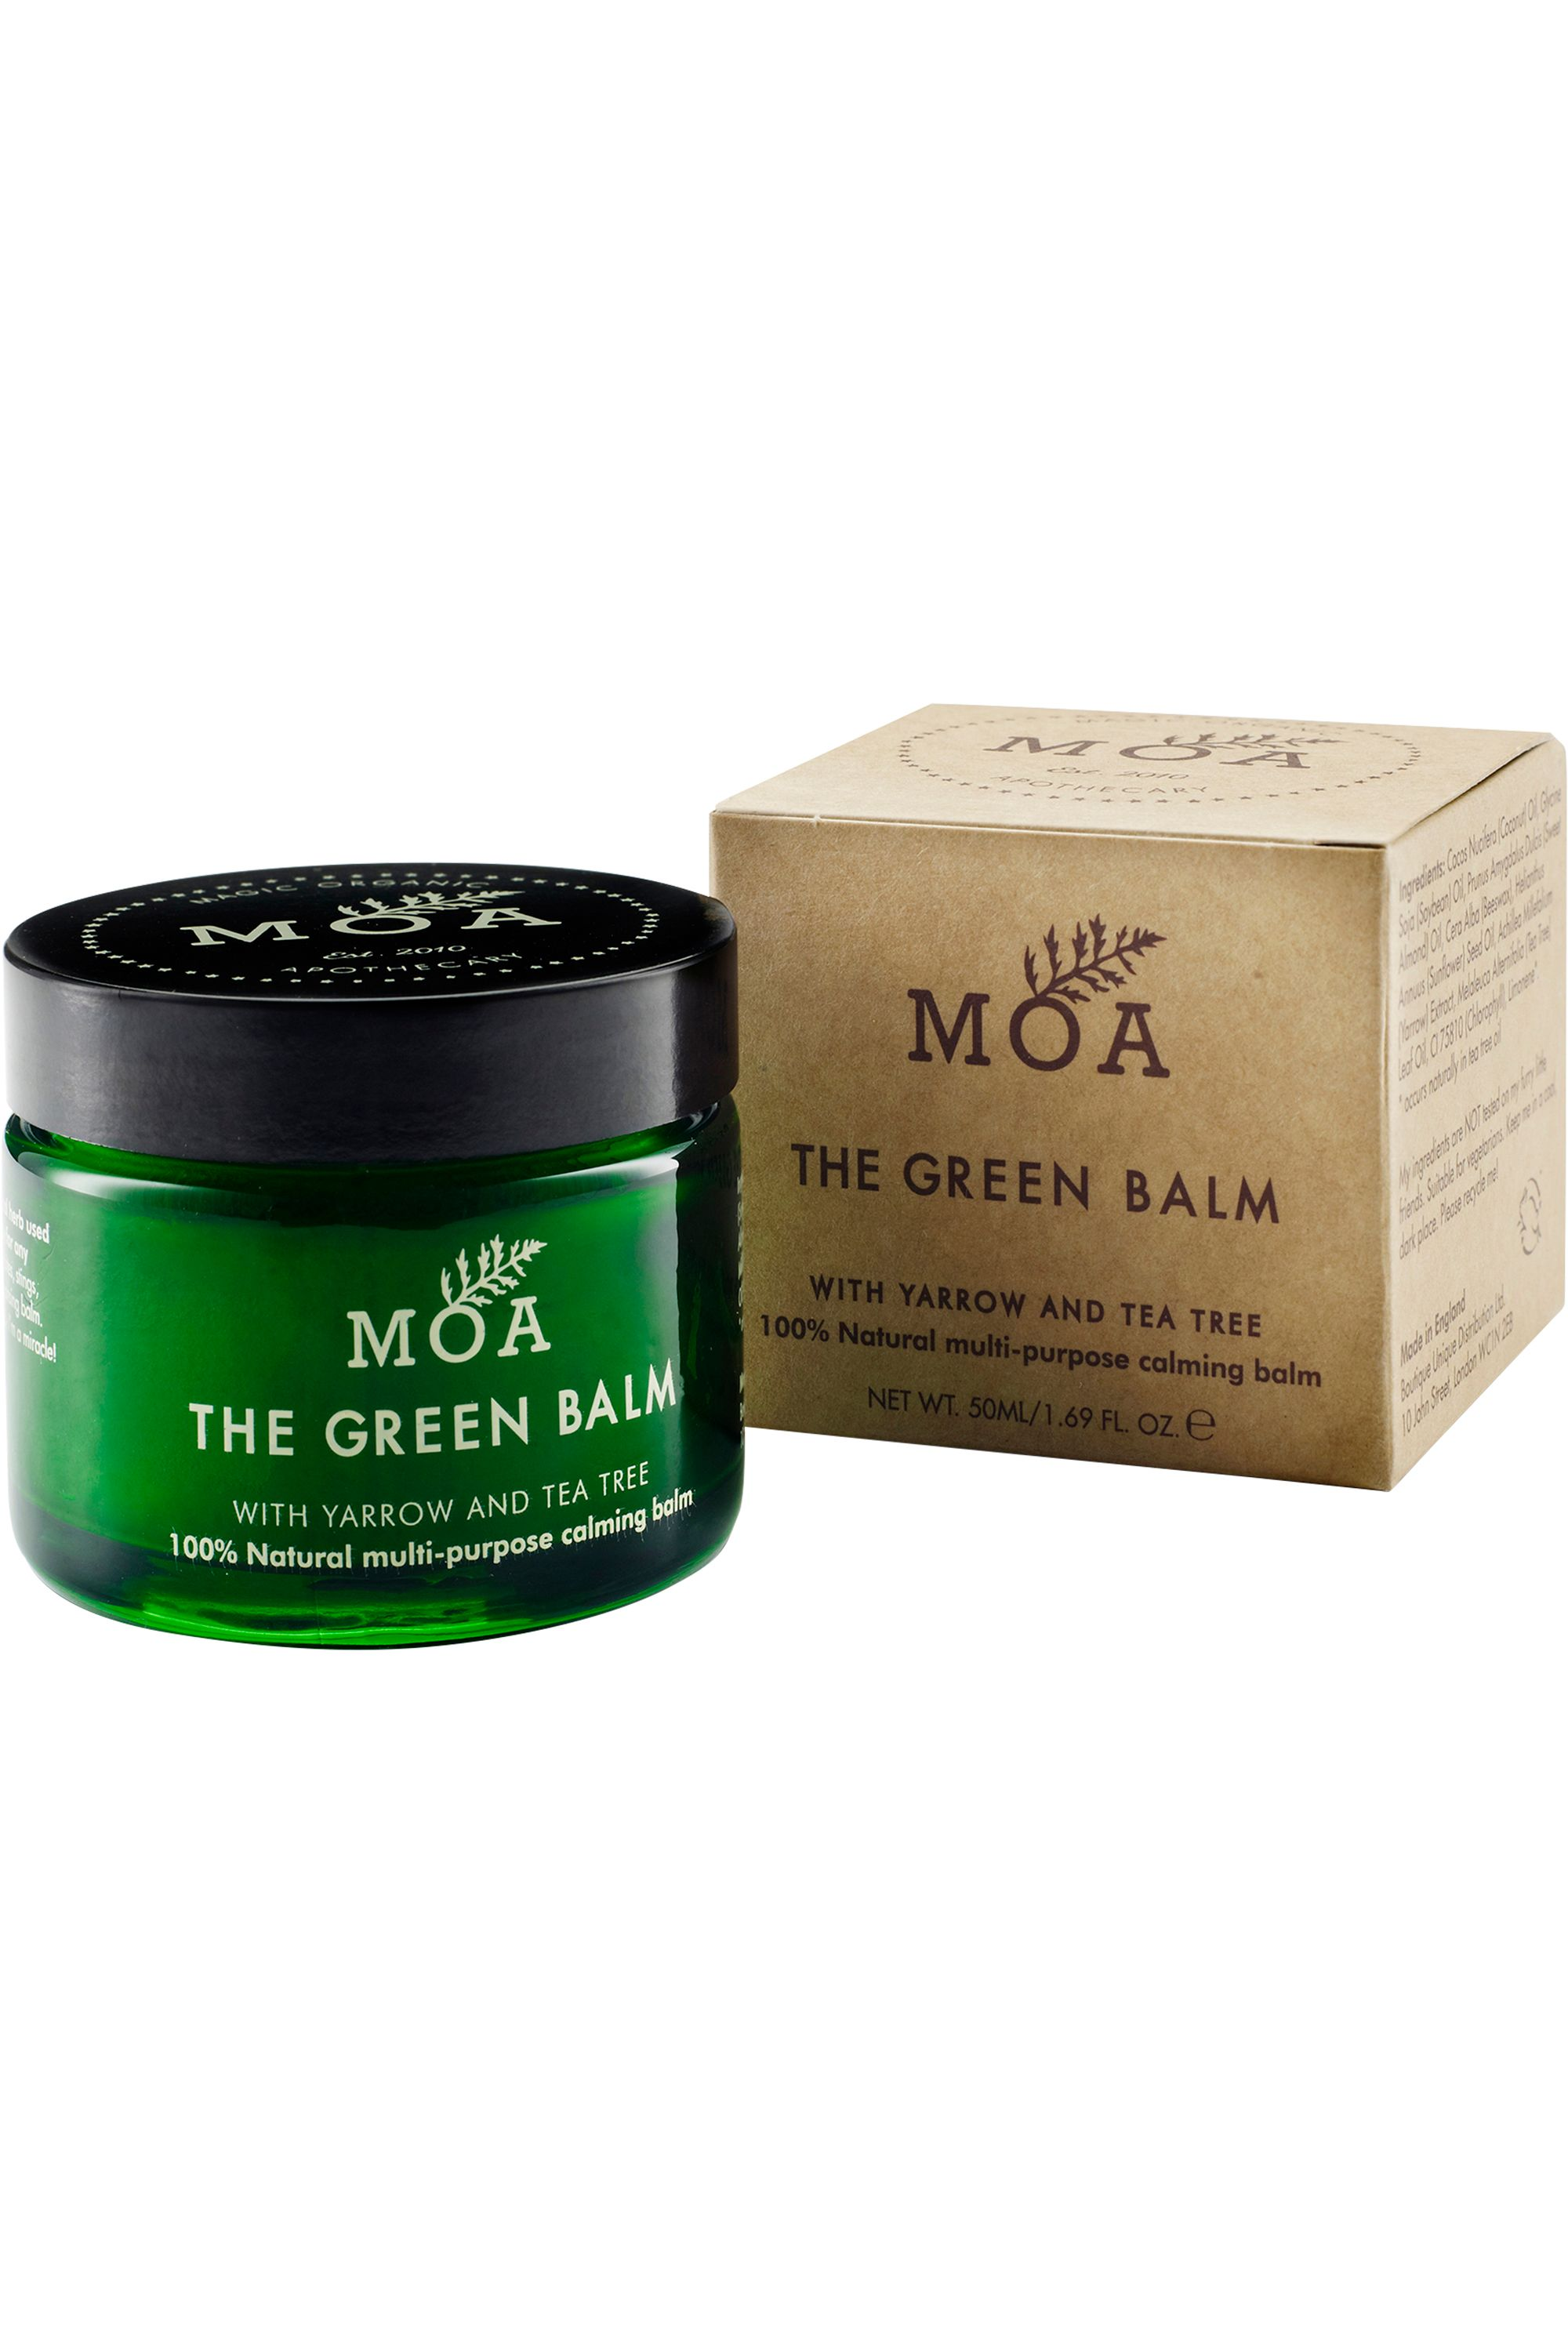 Blissim : MOA - The Green Balm - The Green Balm